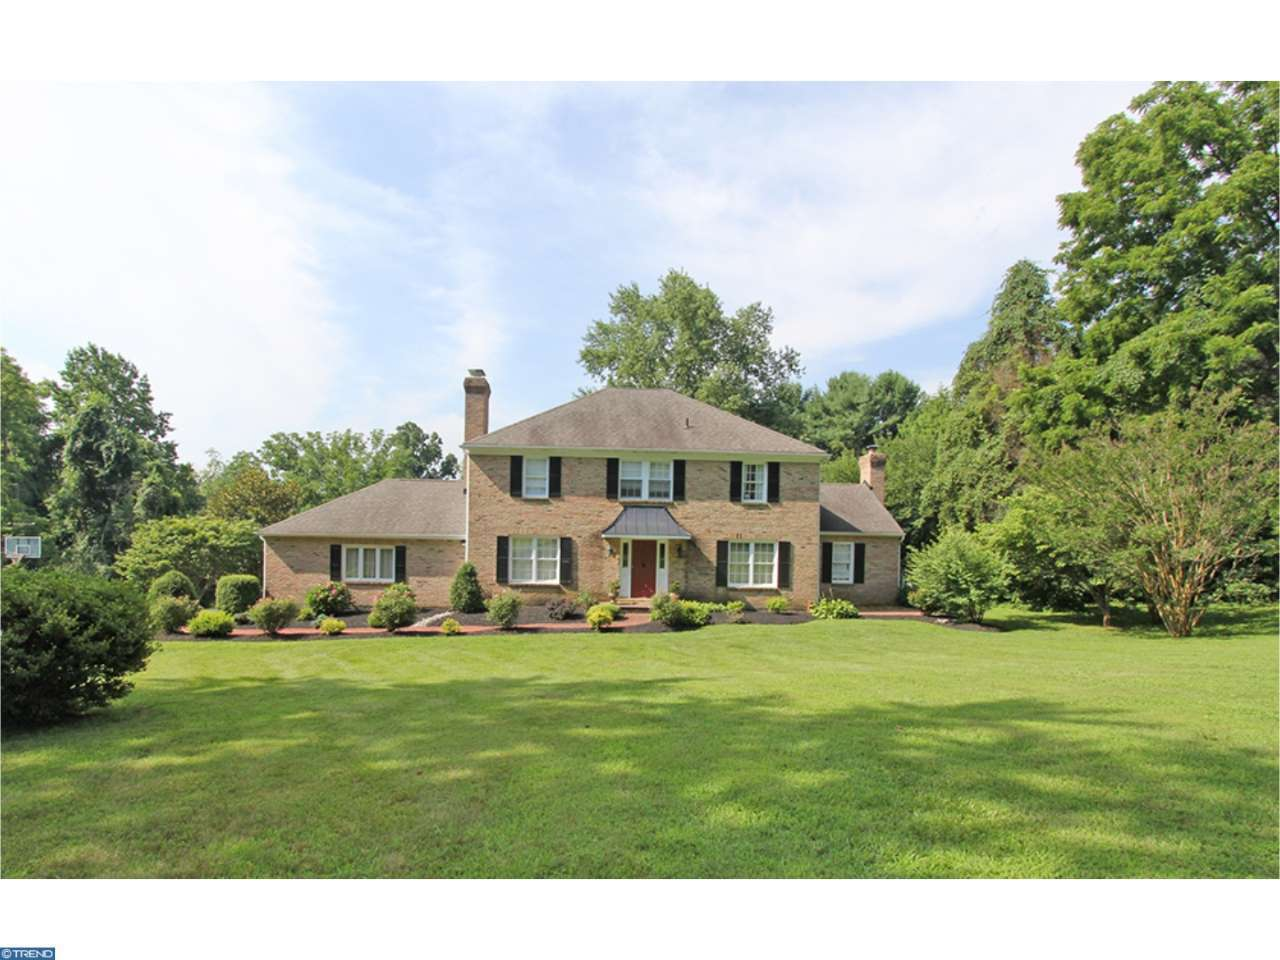 5 arrow ln chadds ford pa 19317 mls 6916207 redfin